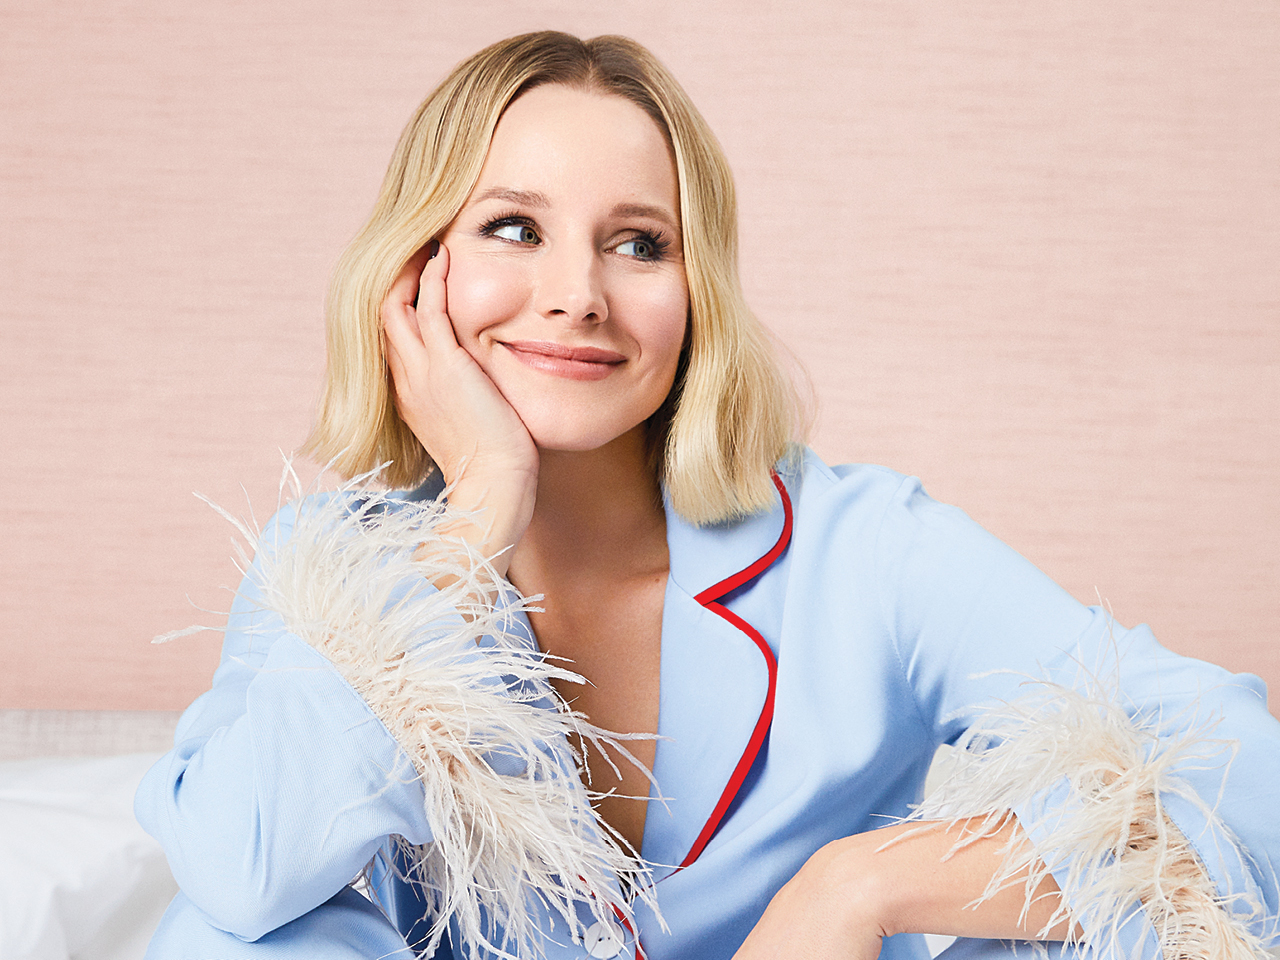 Kristen Bell sitting on a bed leaning with her head on her hand wearing pajamas with feathery cuffs